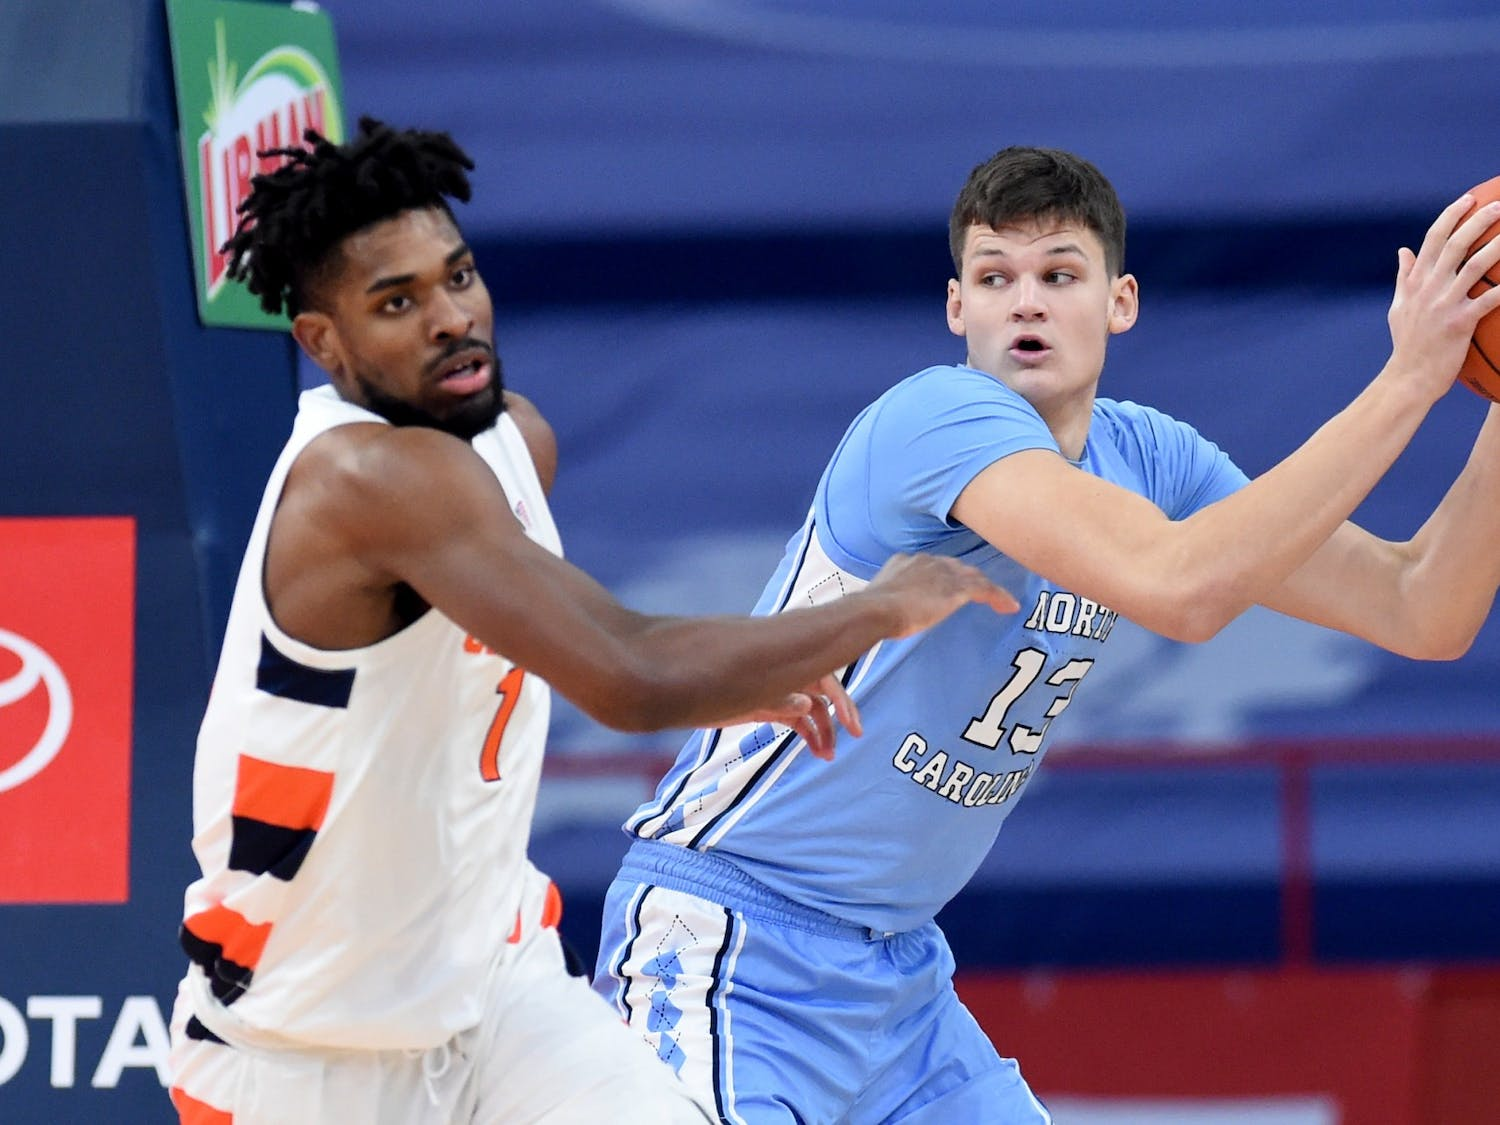 North Carolina Tar Heels forward Walker Kessler (13) pulls down a rebound in front of Syracuse Orange forward Quincy Guerrier (1) in a game between Syracuse and North Carolina  at the Carrier Dome in Syracuse N.Y. March 1, 2021. Photo by Dennis Nett for Syracuse Athletics.